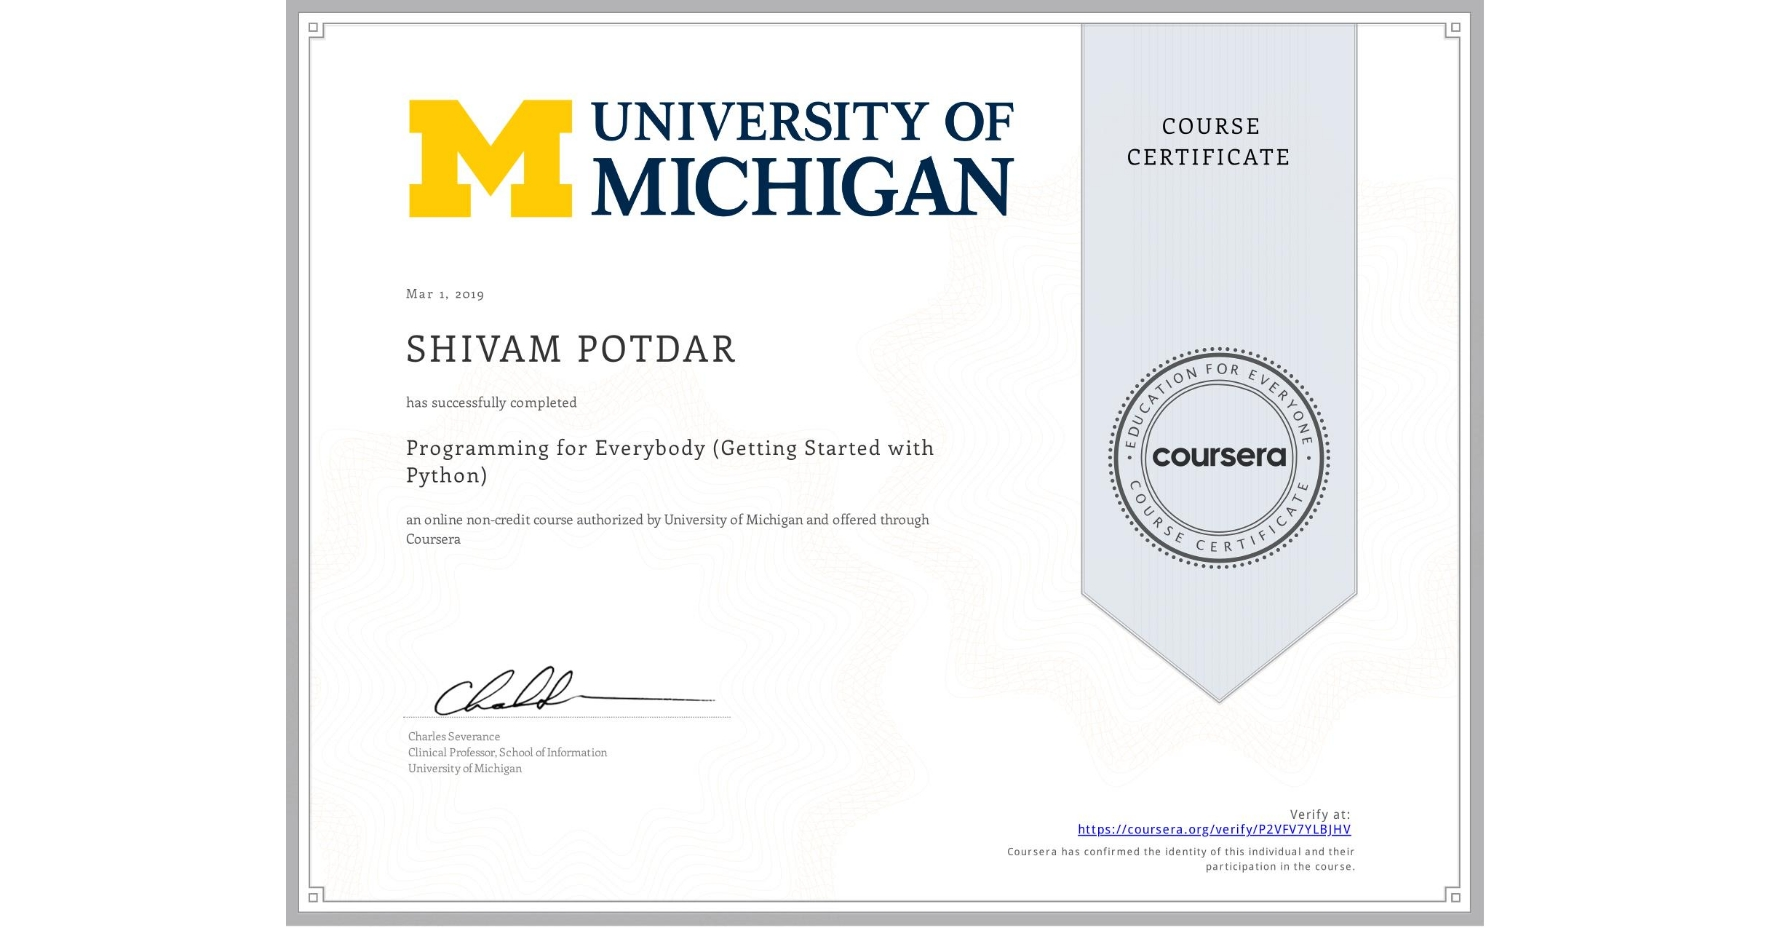 View certificate for SHIVAM POTDAR, Programming for Everybody (Getting Started with Python), an online non-credit course authorized by University of Michigan and offered through Coursera